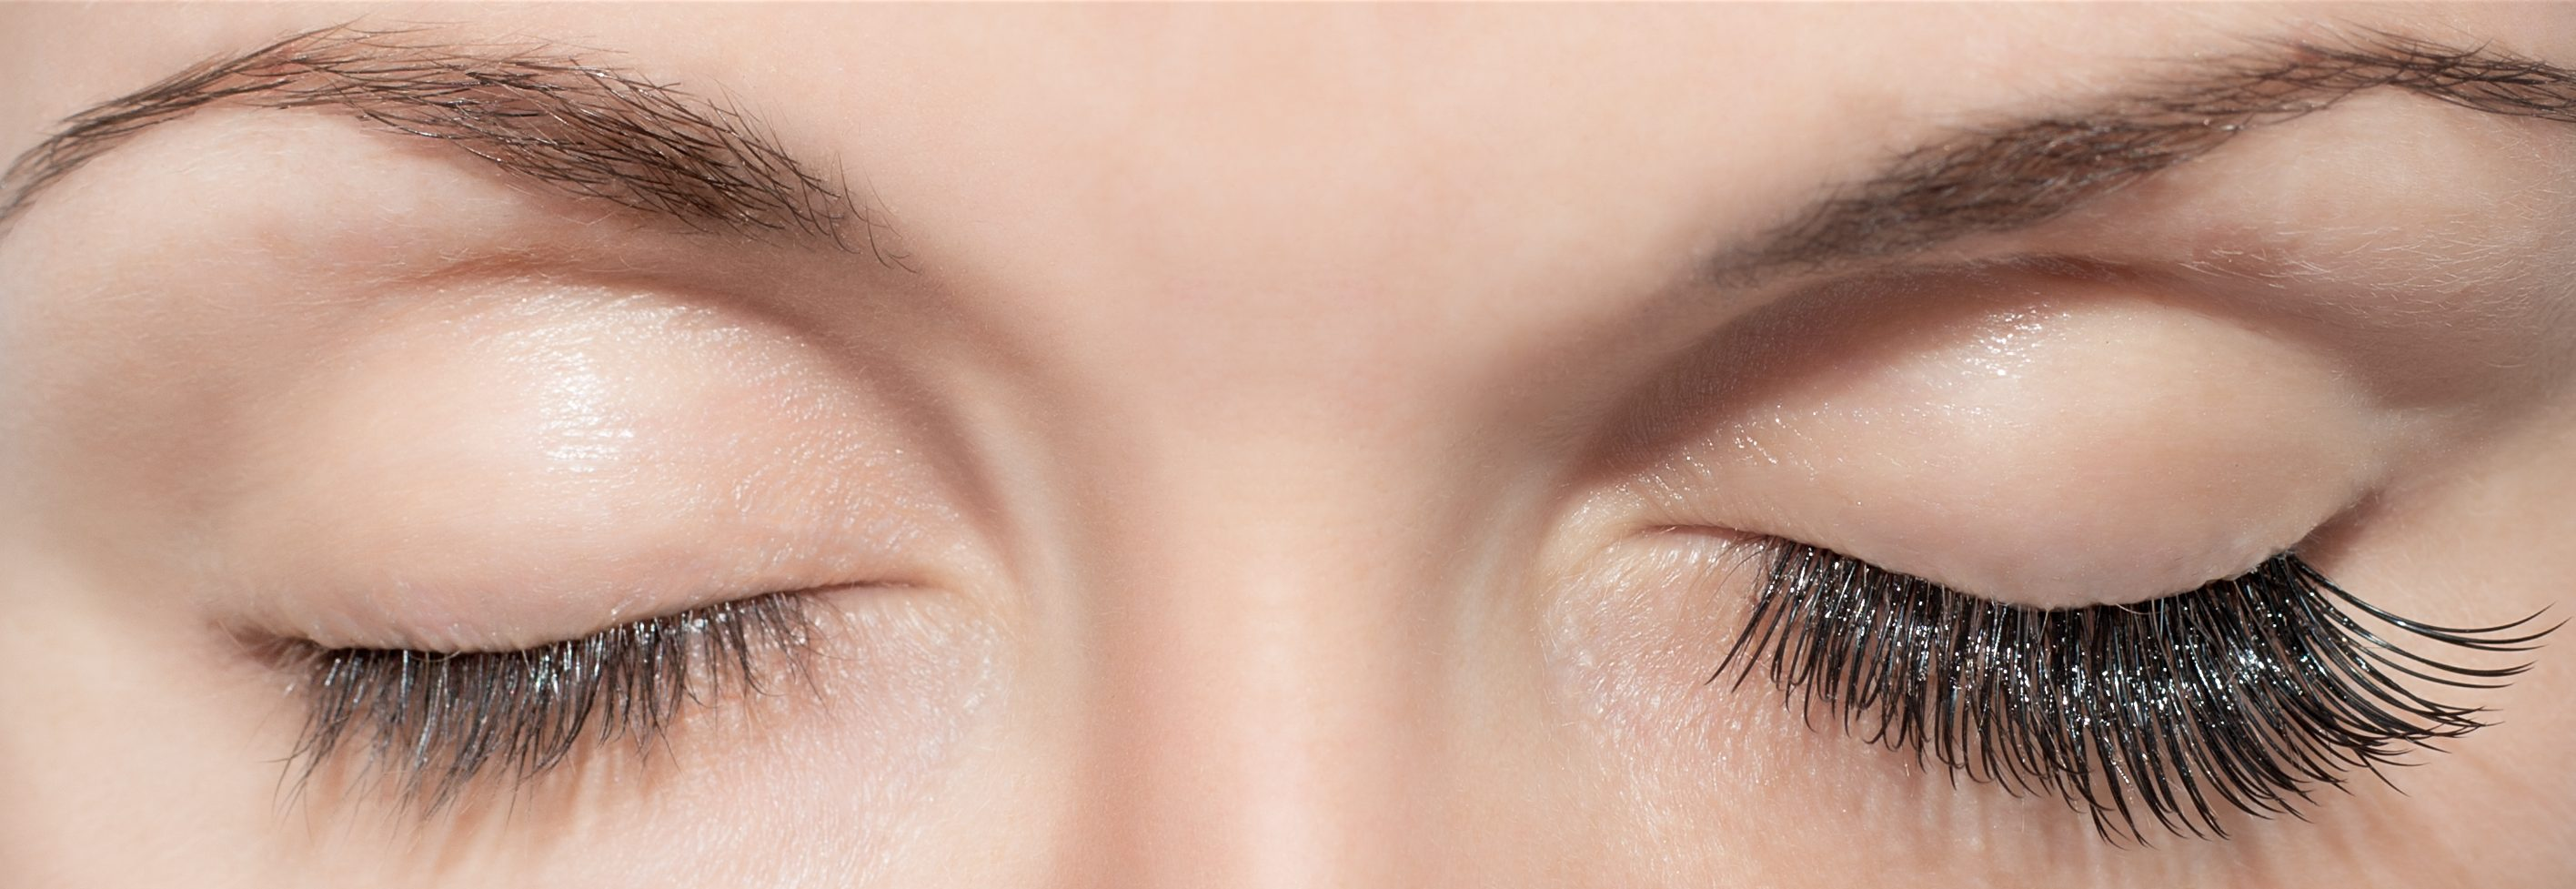 Eyelash Extension That Can Totally Renovate Overall Eye Appearance